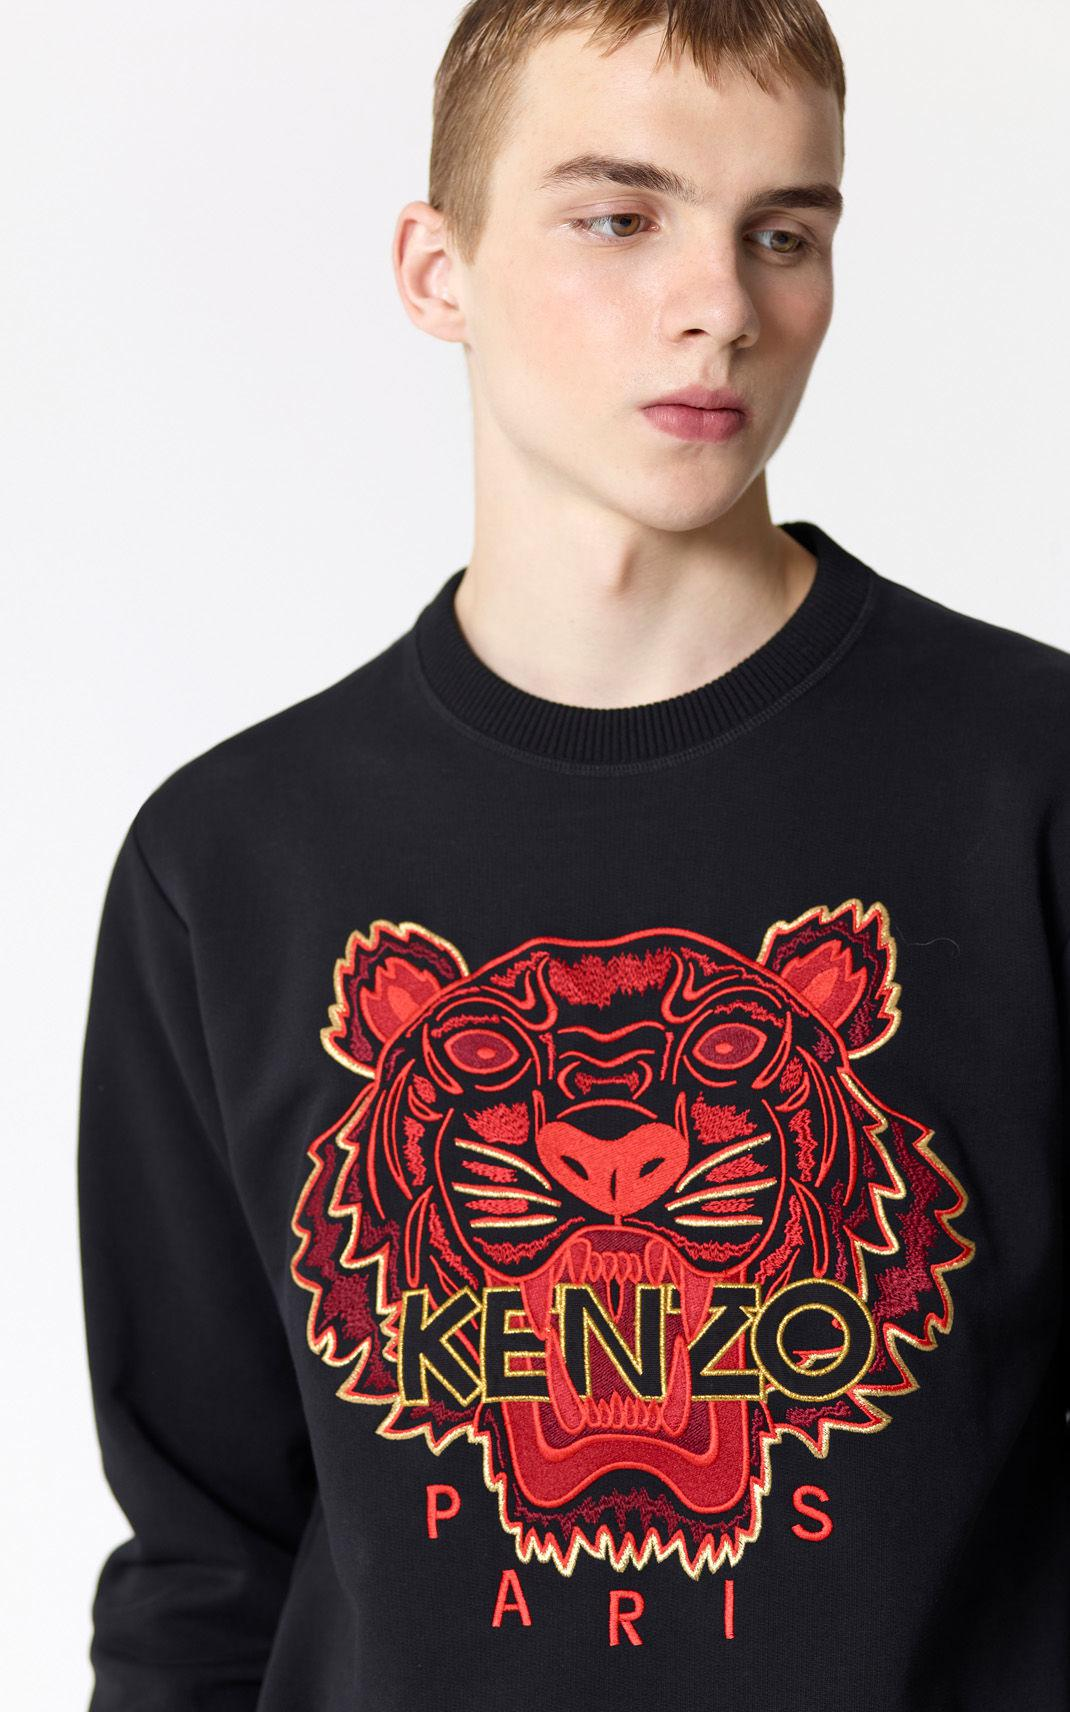 ef4fab48f46 KENZO 'chinese Ny Capsule Collection' Tiger Sweatshirt in Black for ...